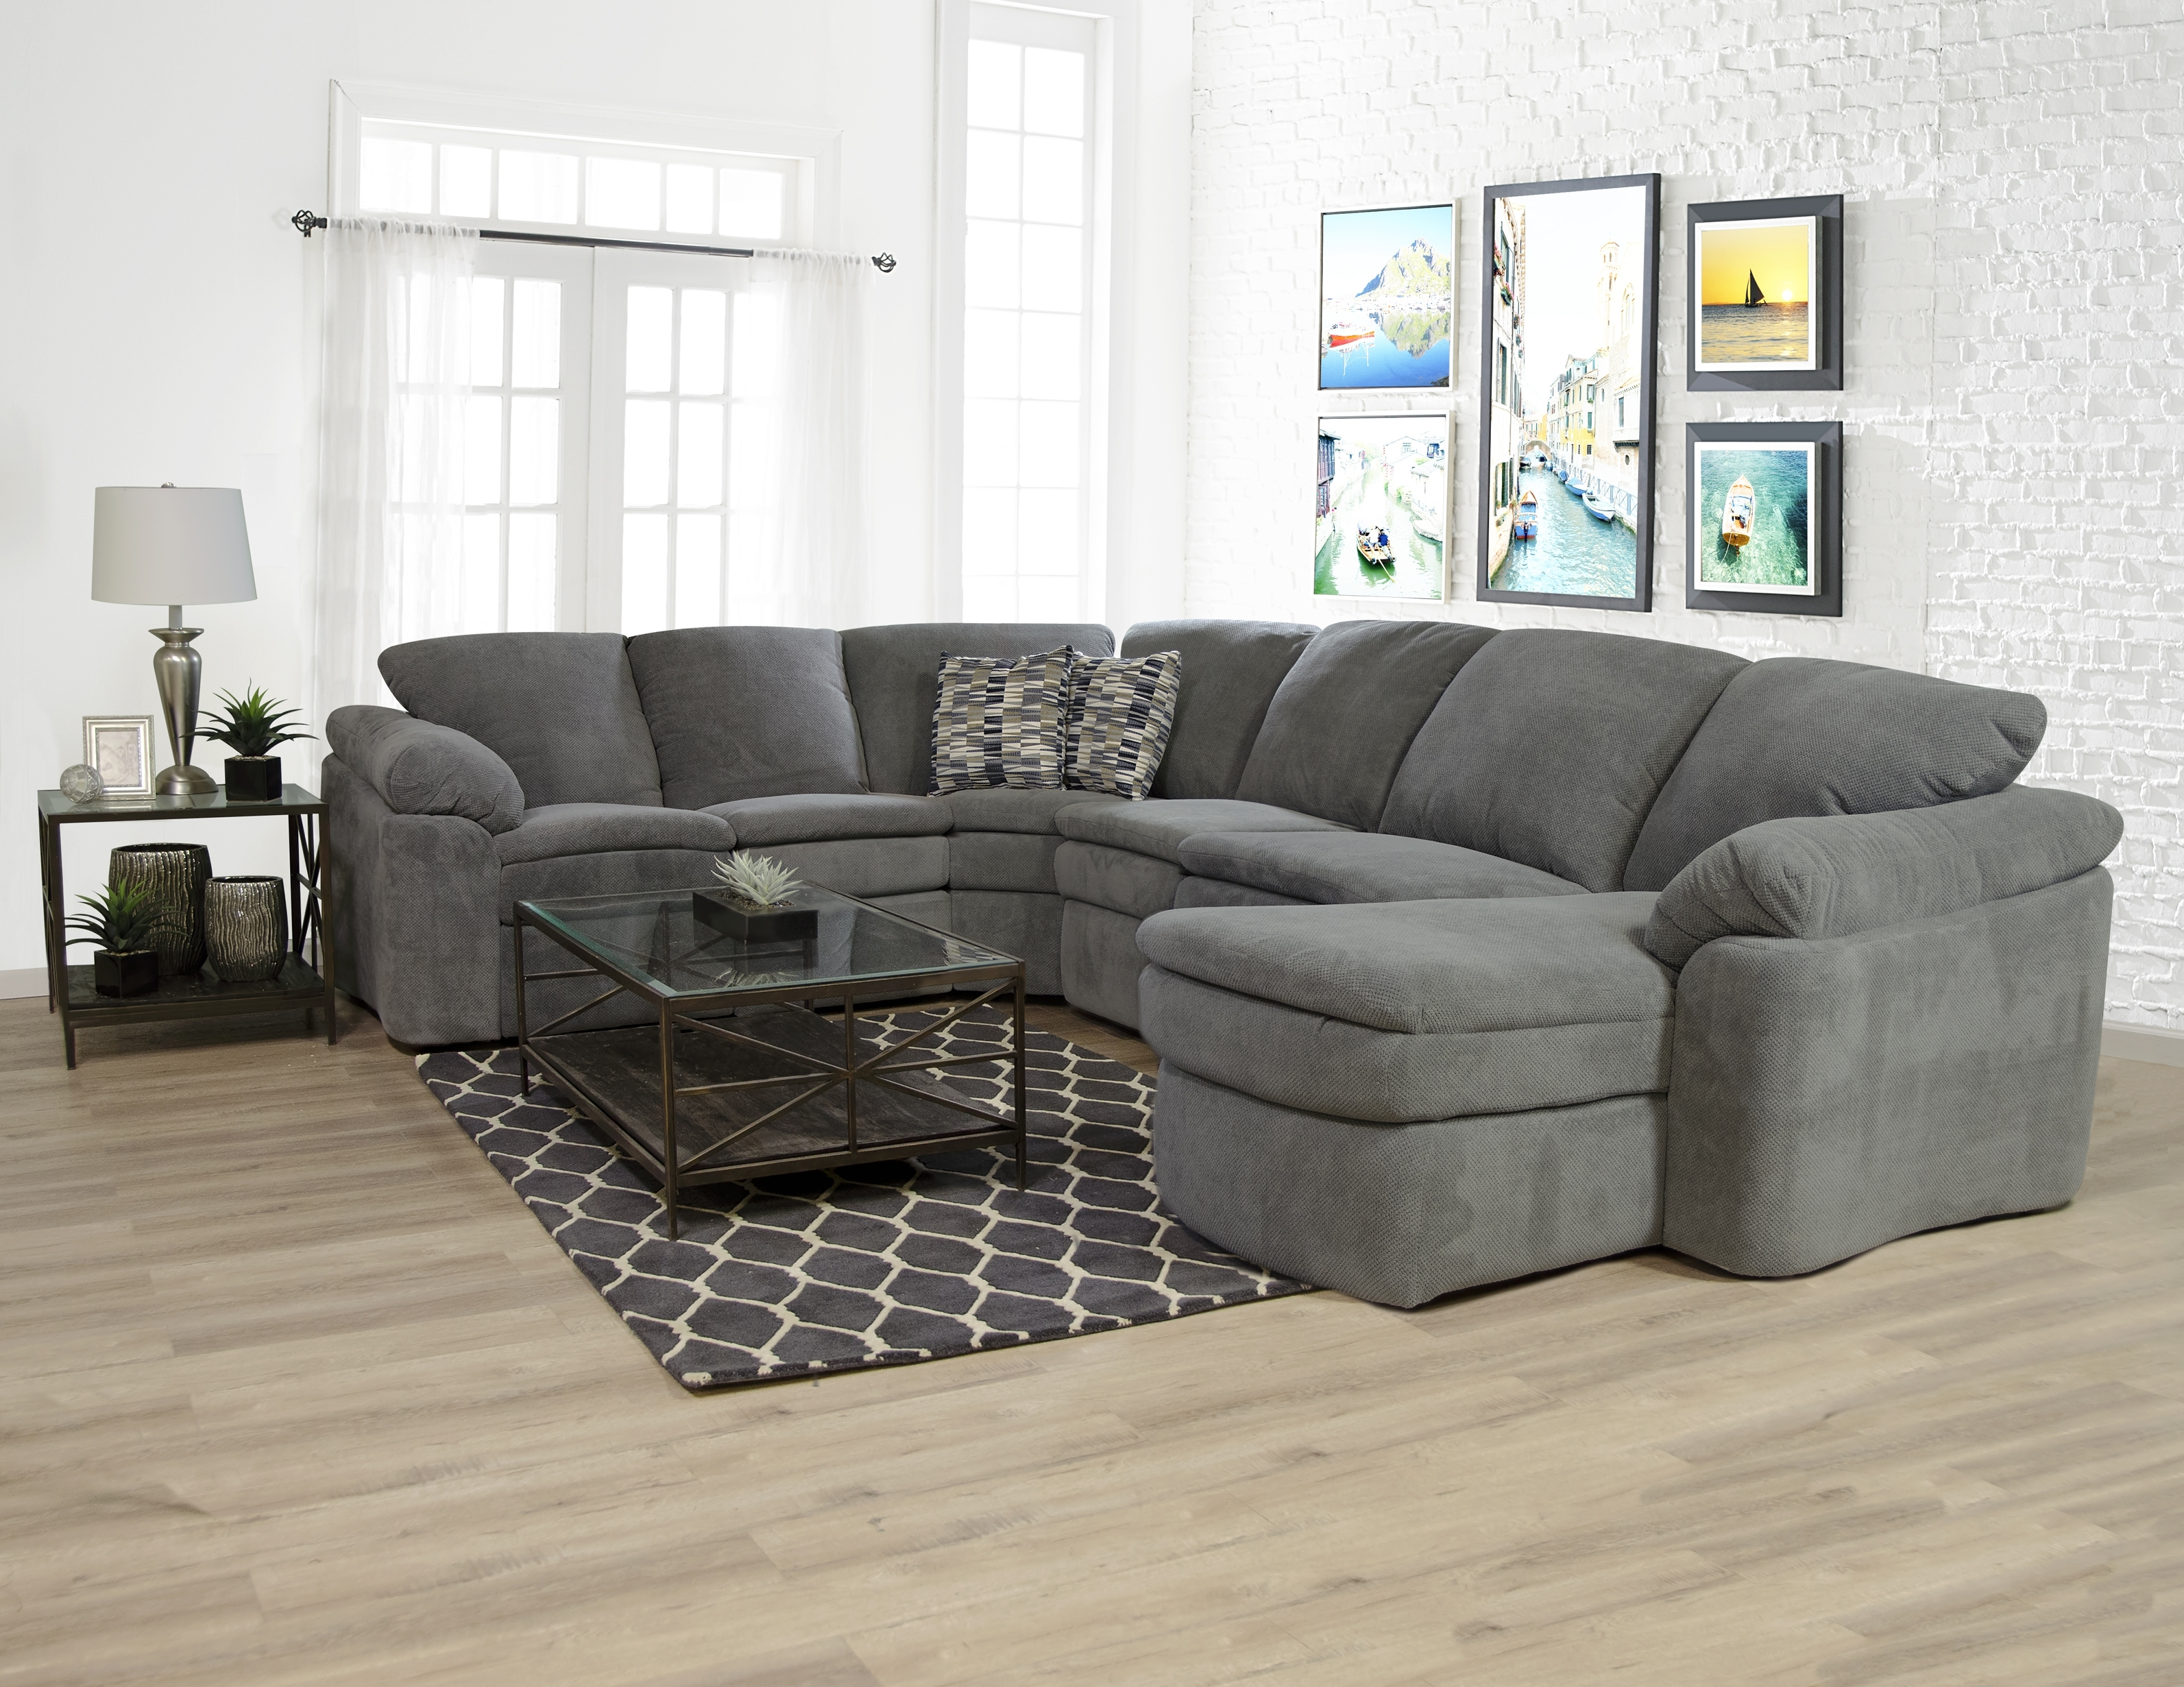 England Furniture 7300 06, 7300 40, 7300 22, 7300 39, 7300 57 With With Regard To Recent Erie Pa Sectional Sofas (View 3 of 20)